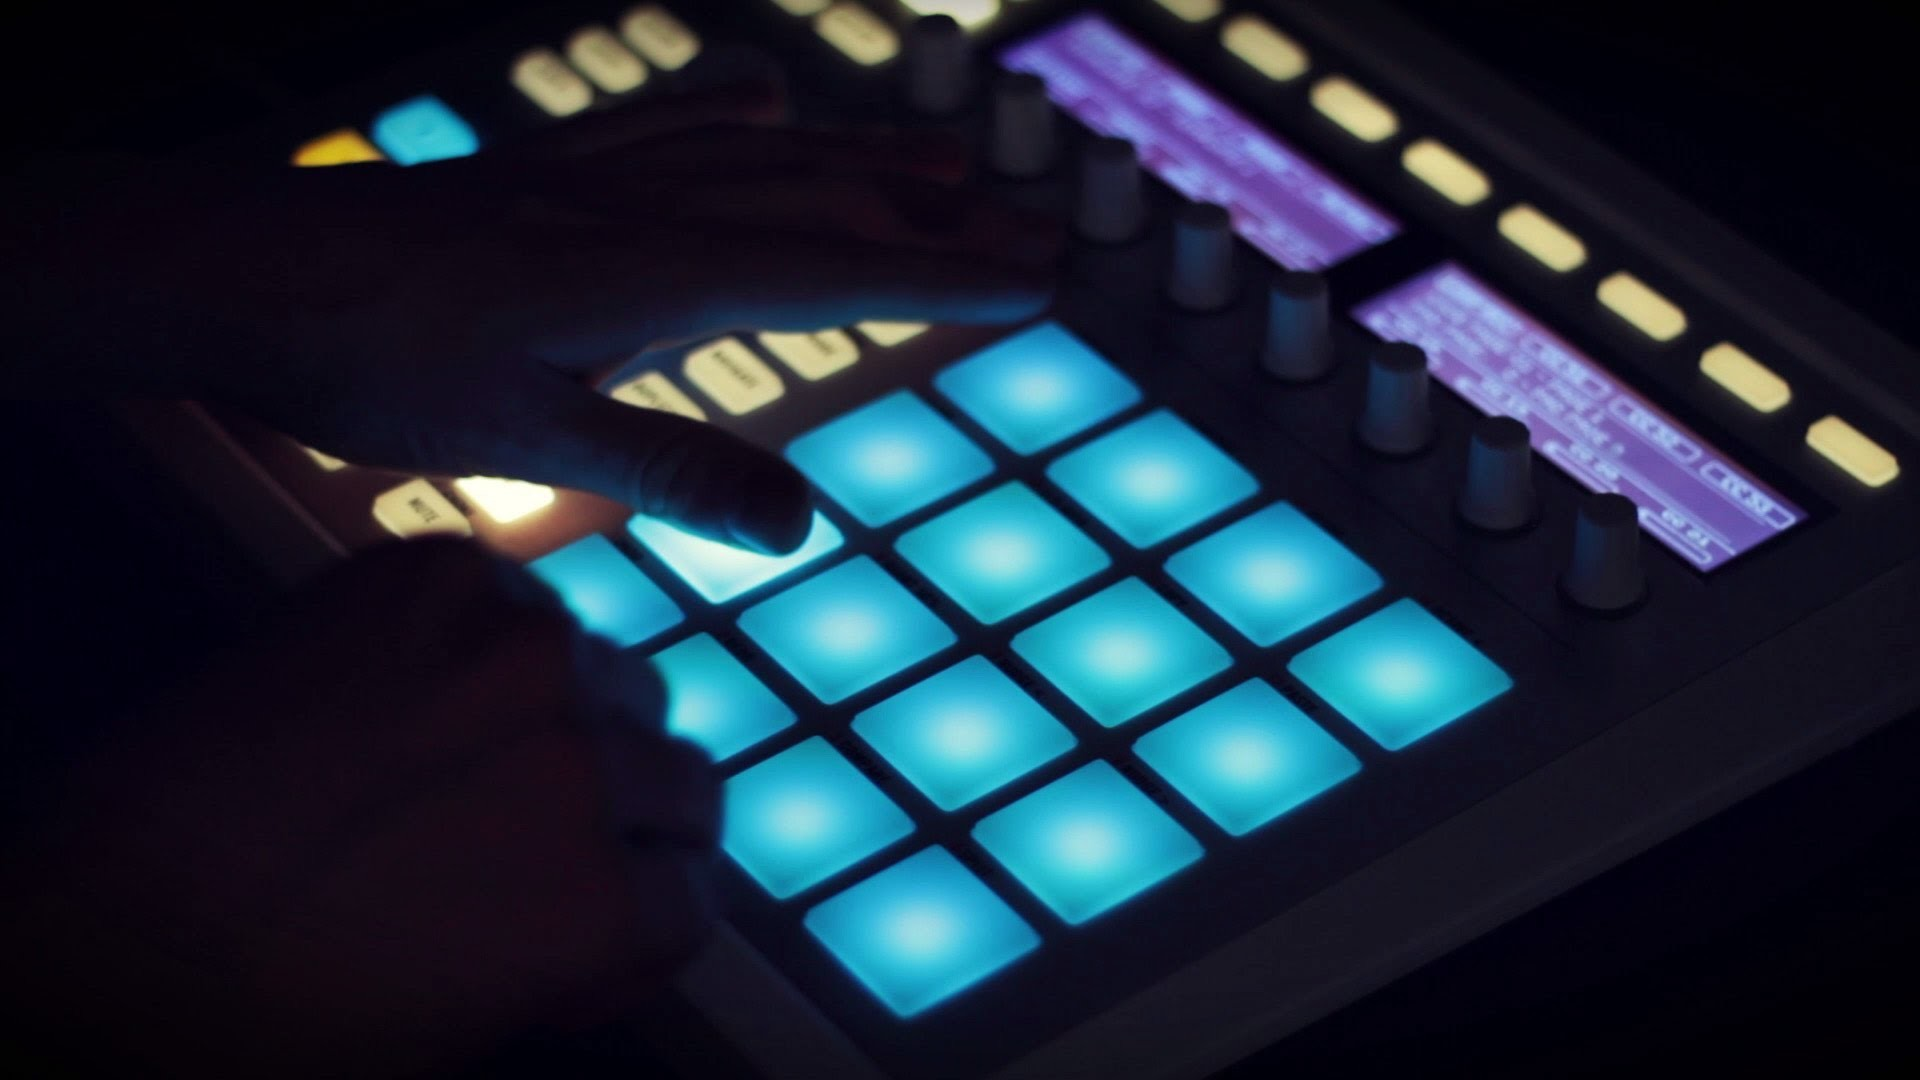 FL Studio Wallpapers and Backgrounds (77+ images)